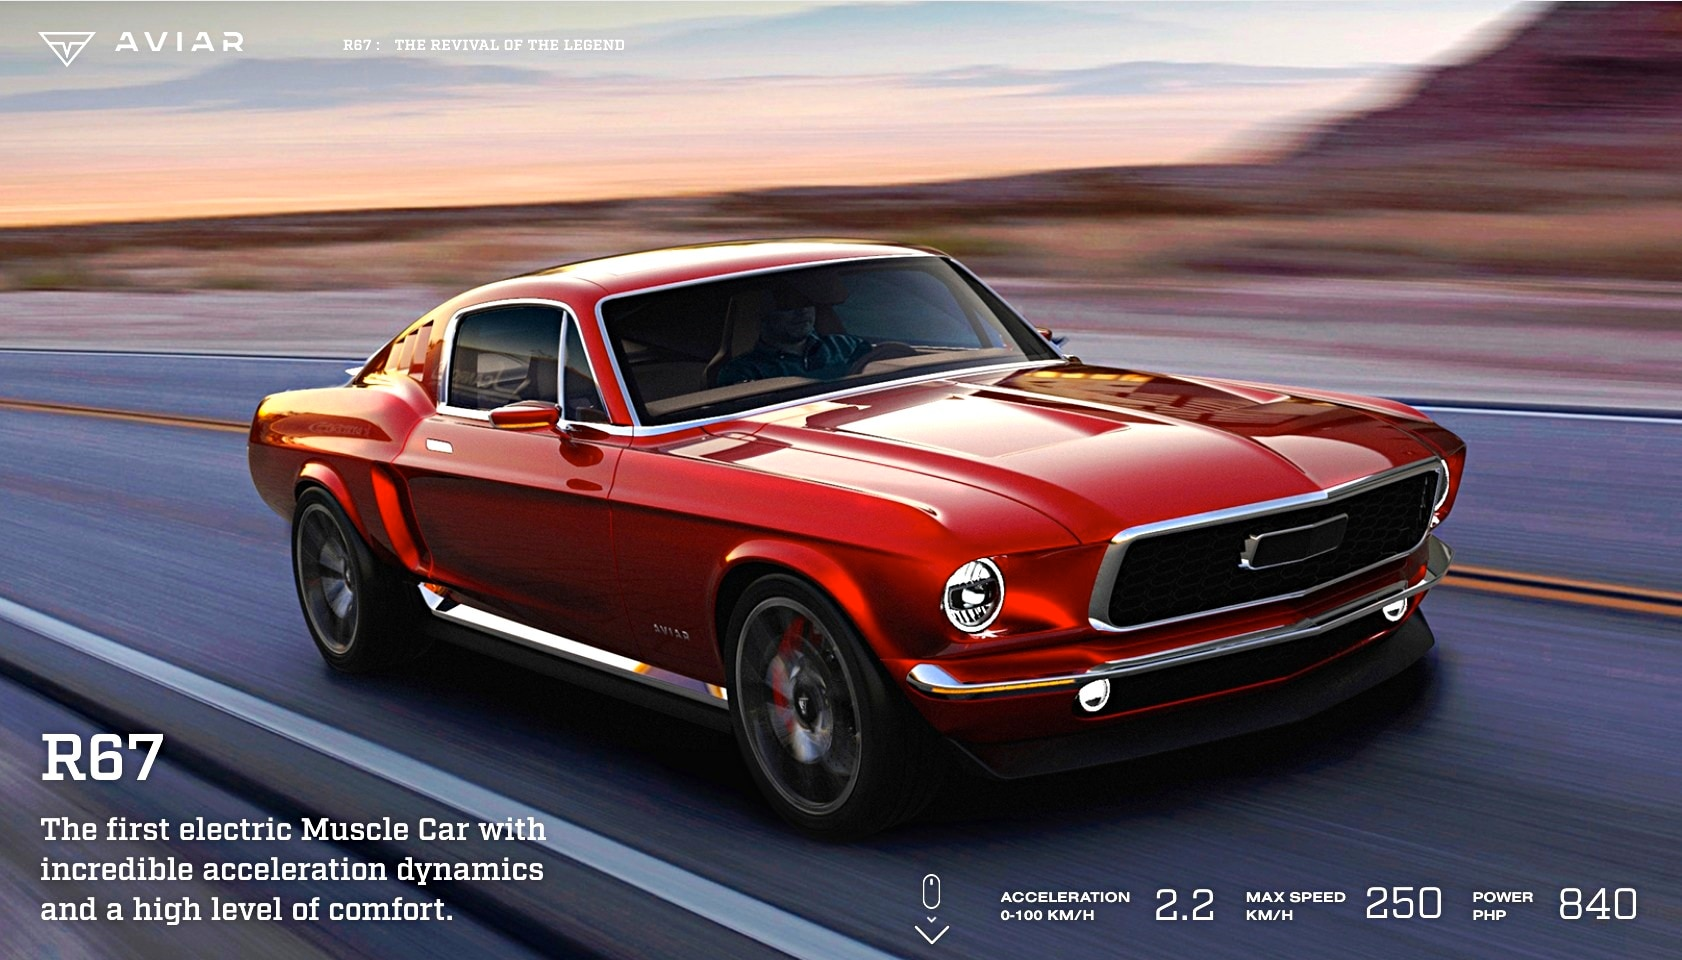 Russian 1967 Mustang Clone Rhymes with Caviar Goes Like Stink